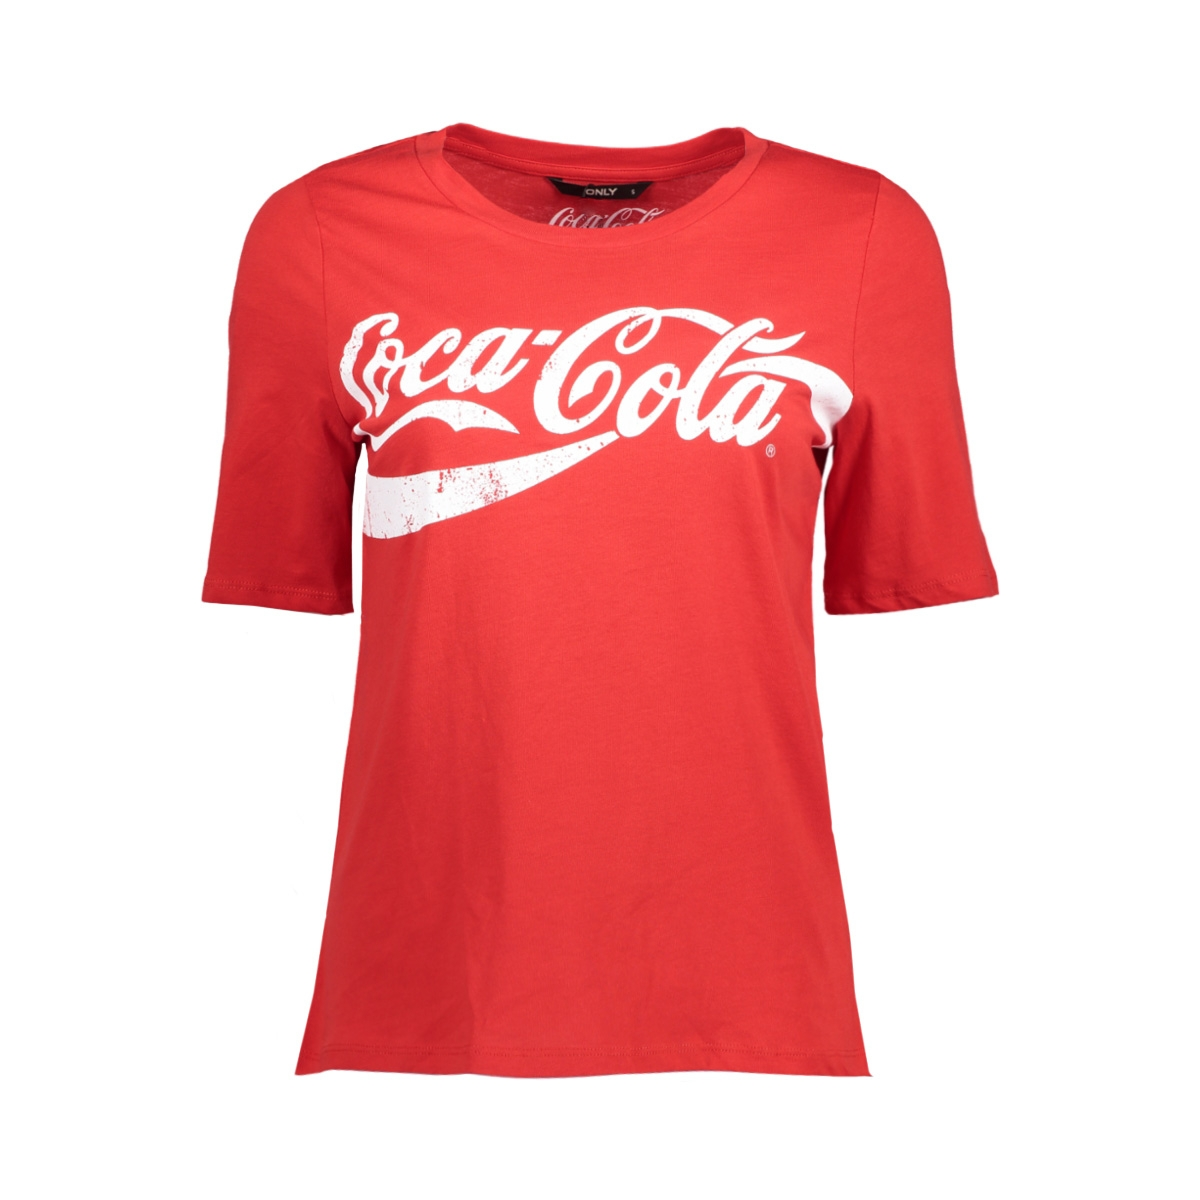 onlcoca cola tee jrs 15151703 only t-shirt racing red/white